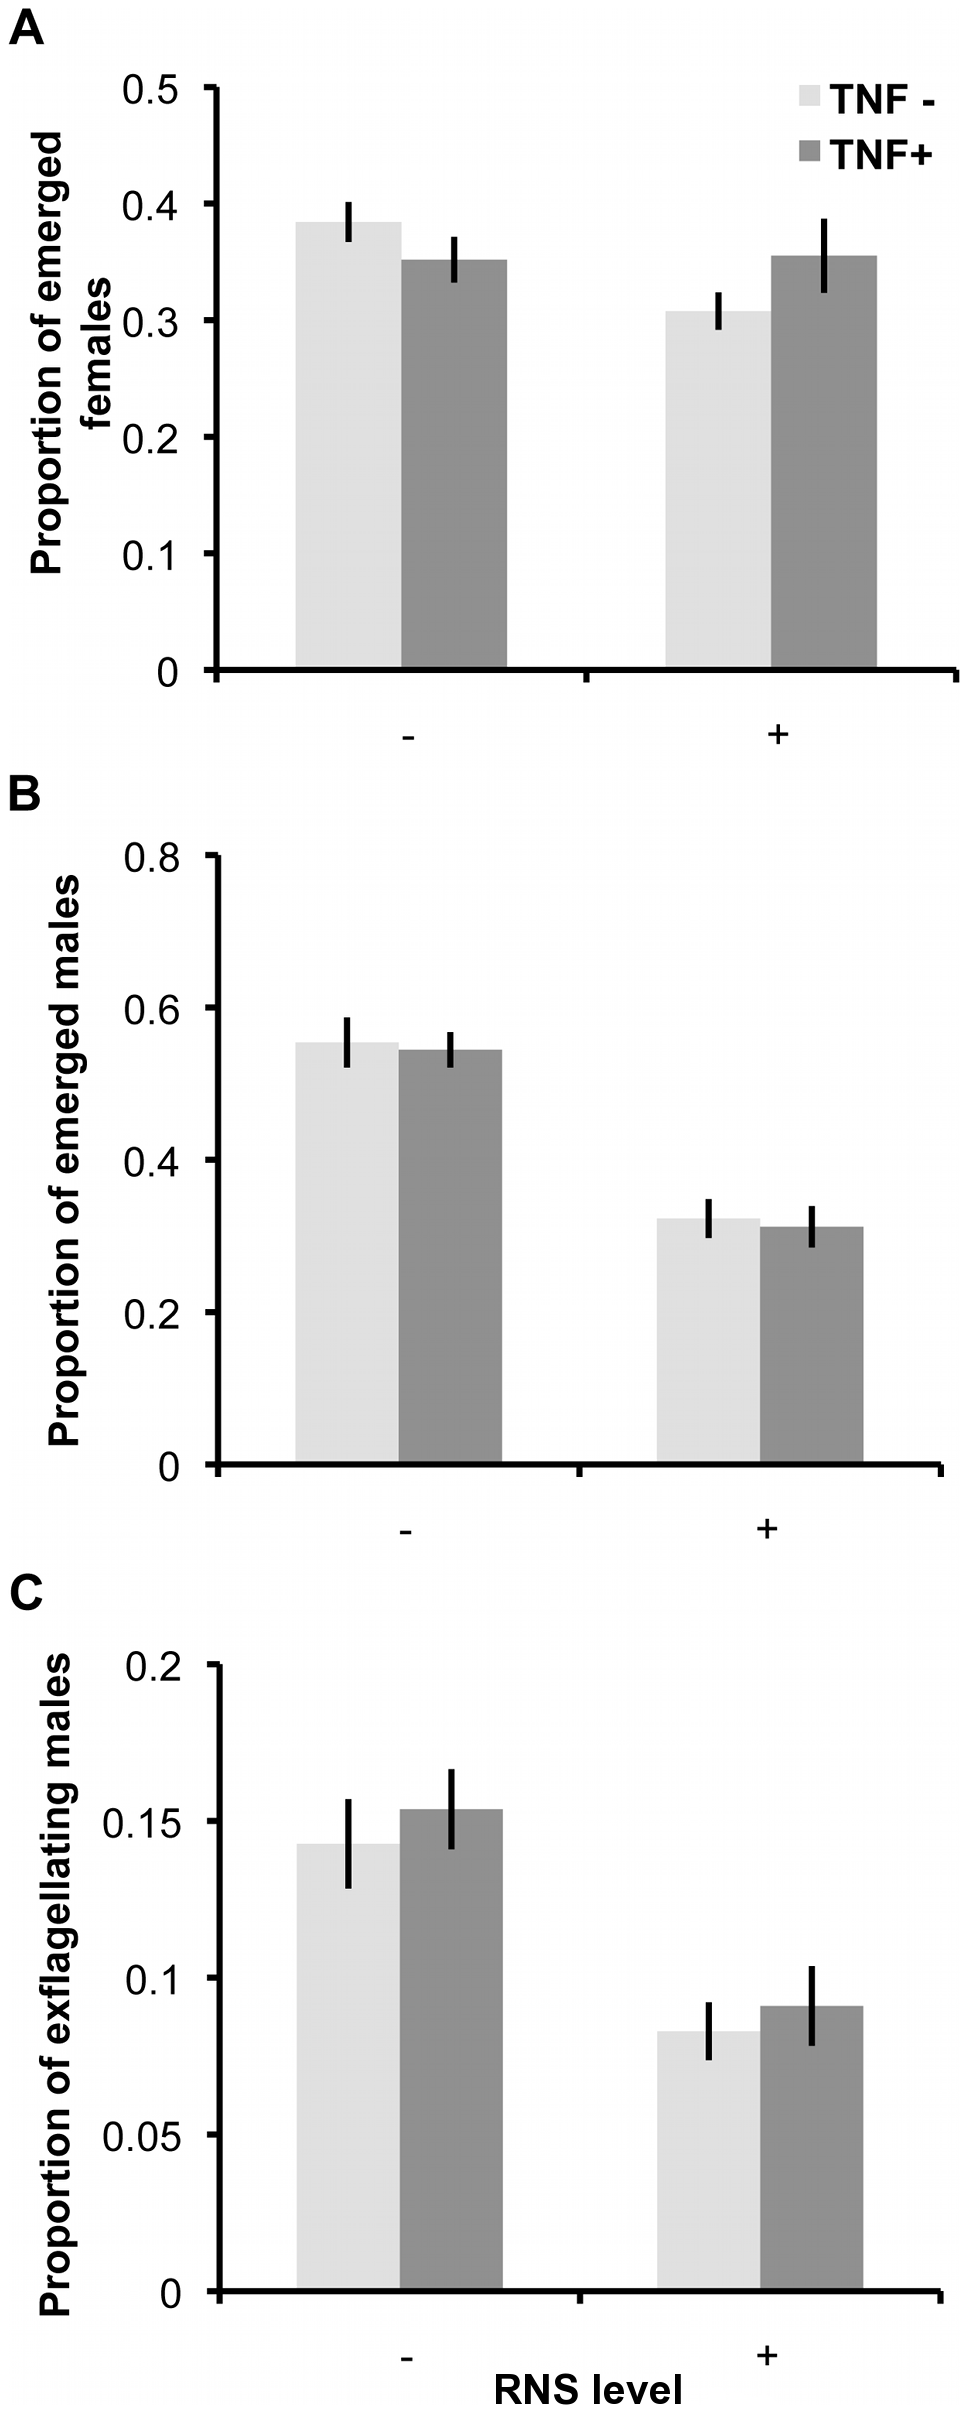 Ability of gametocytes to undergo gametogenesis after exposure to RNS and TNF-α.